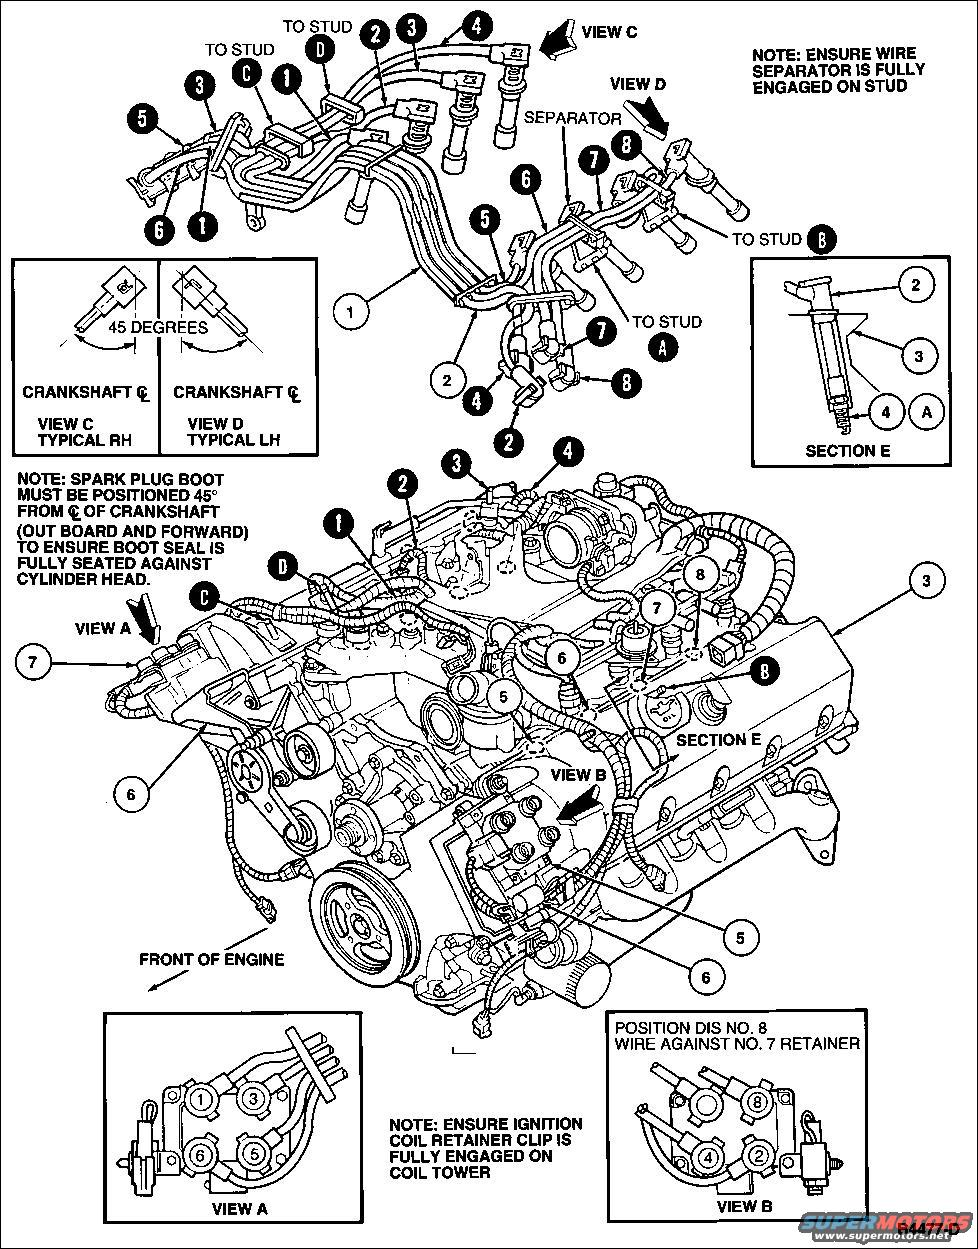 1994 Ford crown victoria firing order